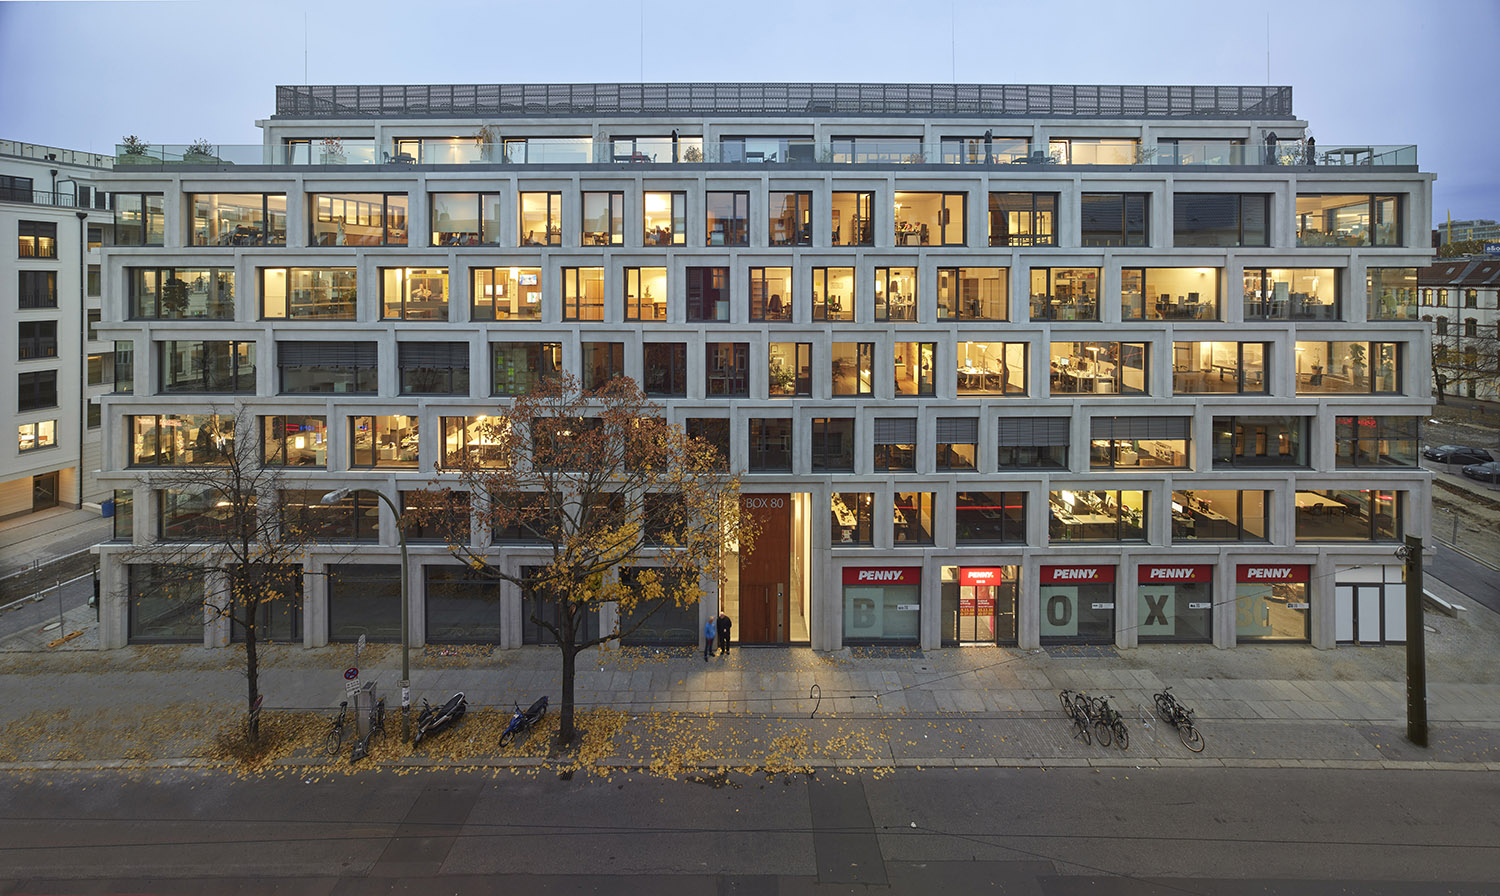 The new office building has an open, elaborated façade structure Roland Halbe